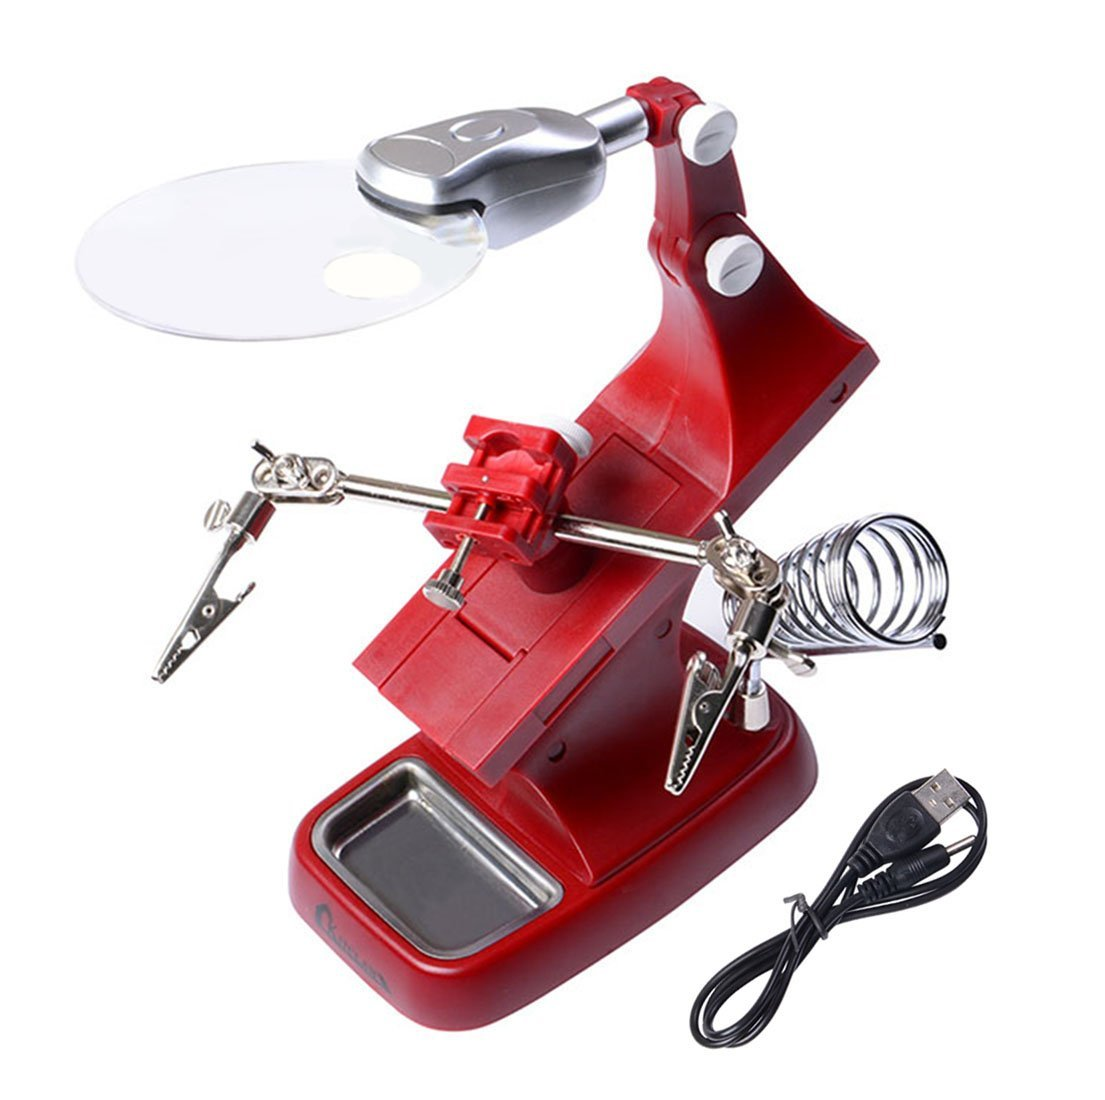 Helping Hands Soldering - Kitclan LED Light Desktop Magnifier with 360-Degree Roating Lens, 3X 4.5X Illuminated with Clamp and Alligator Clips Red Hands Free Bench Magnifier, Powered by USB/Battery